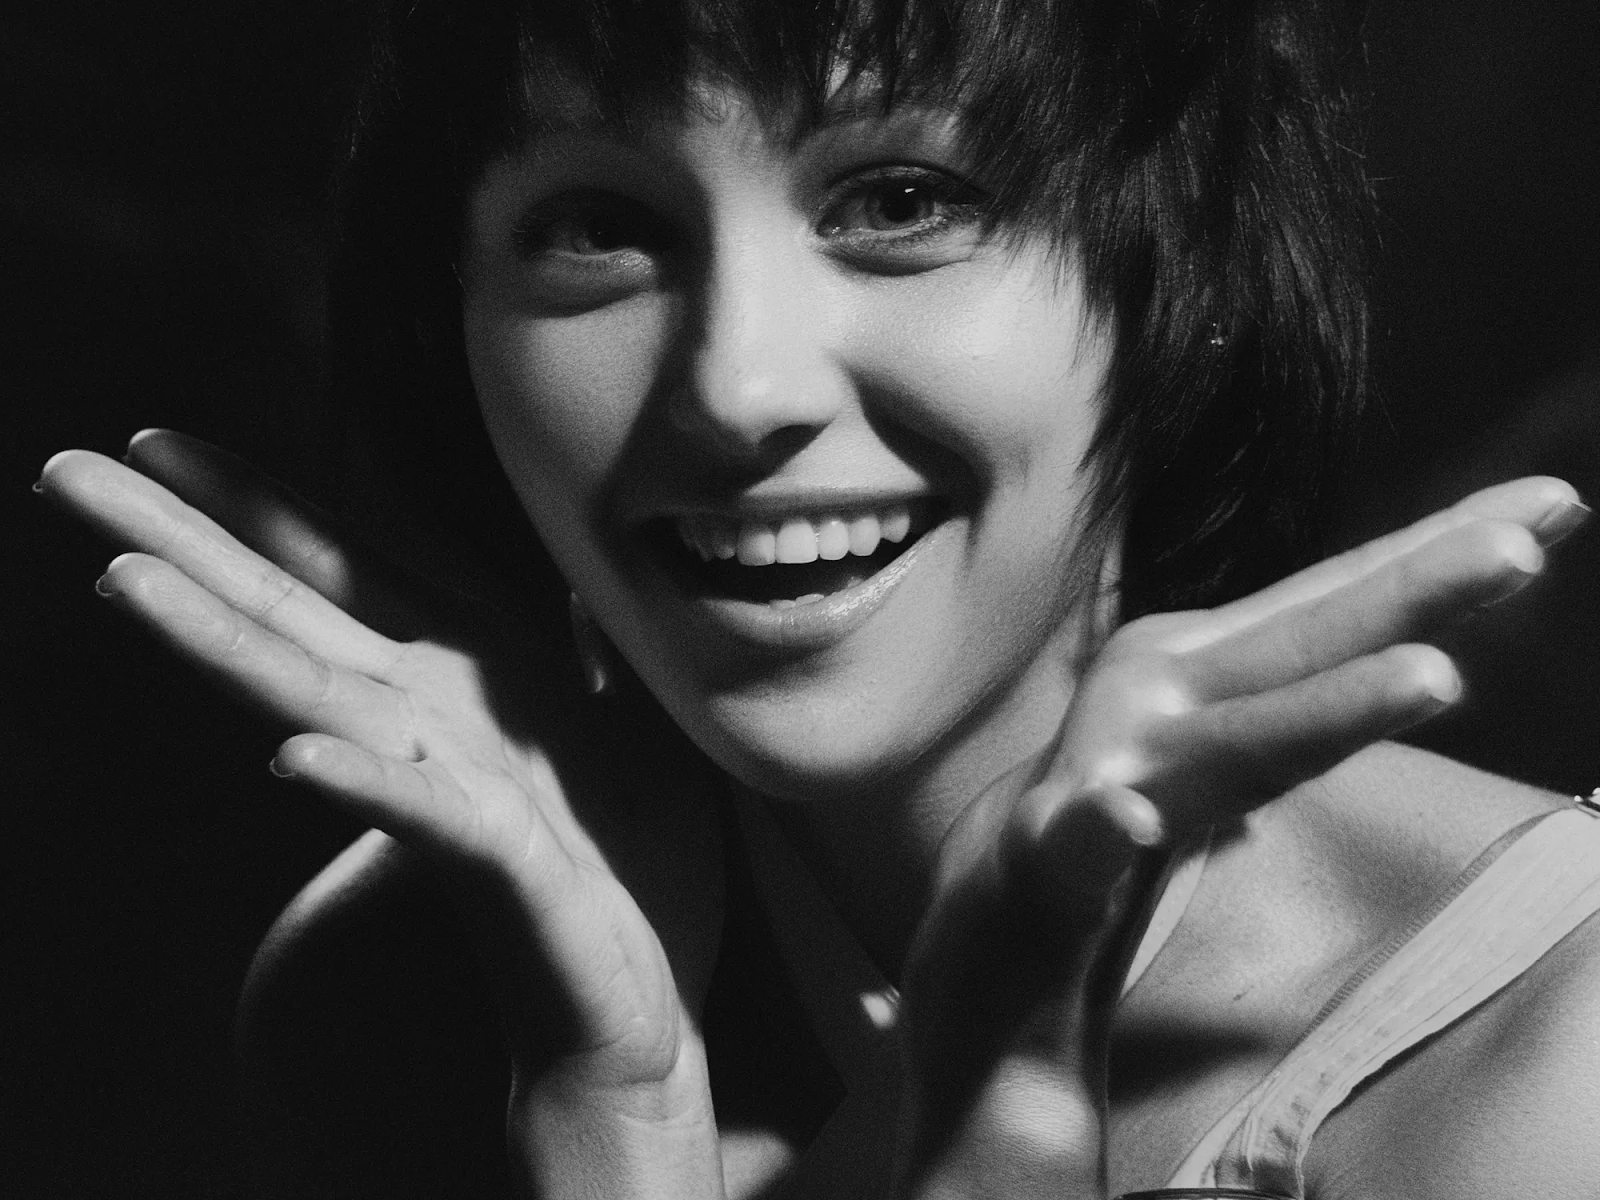 black and white photo of woman smiling